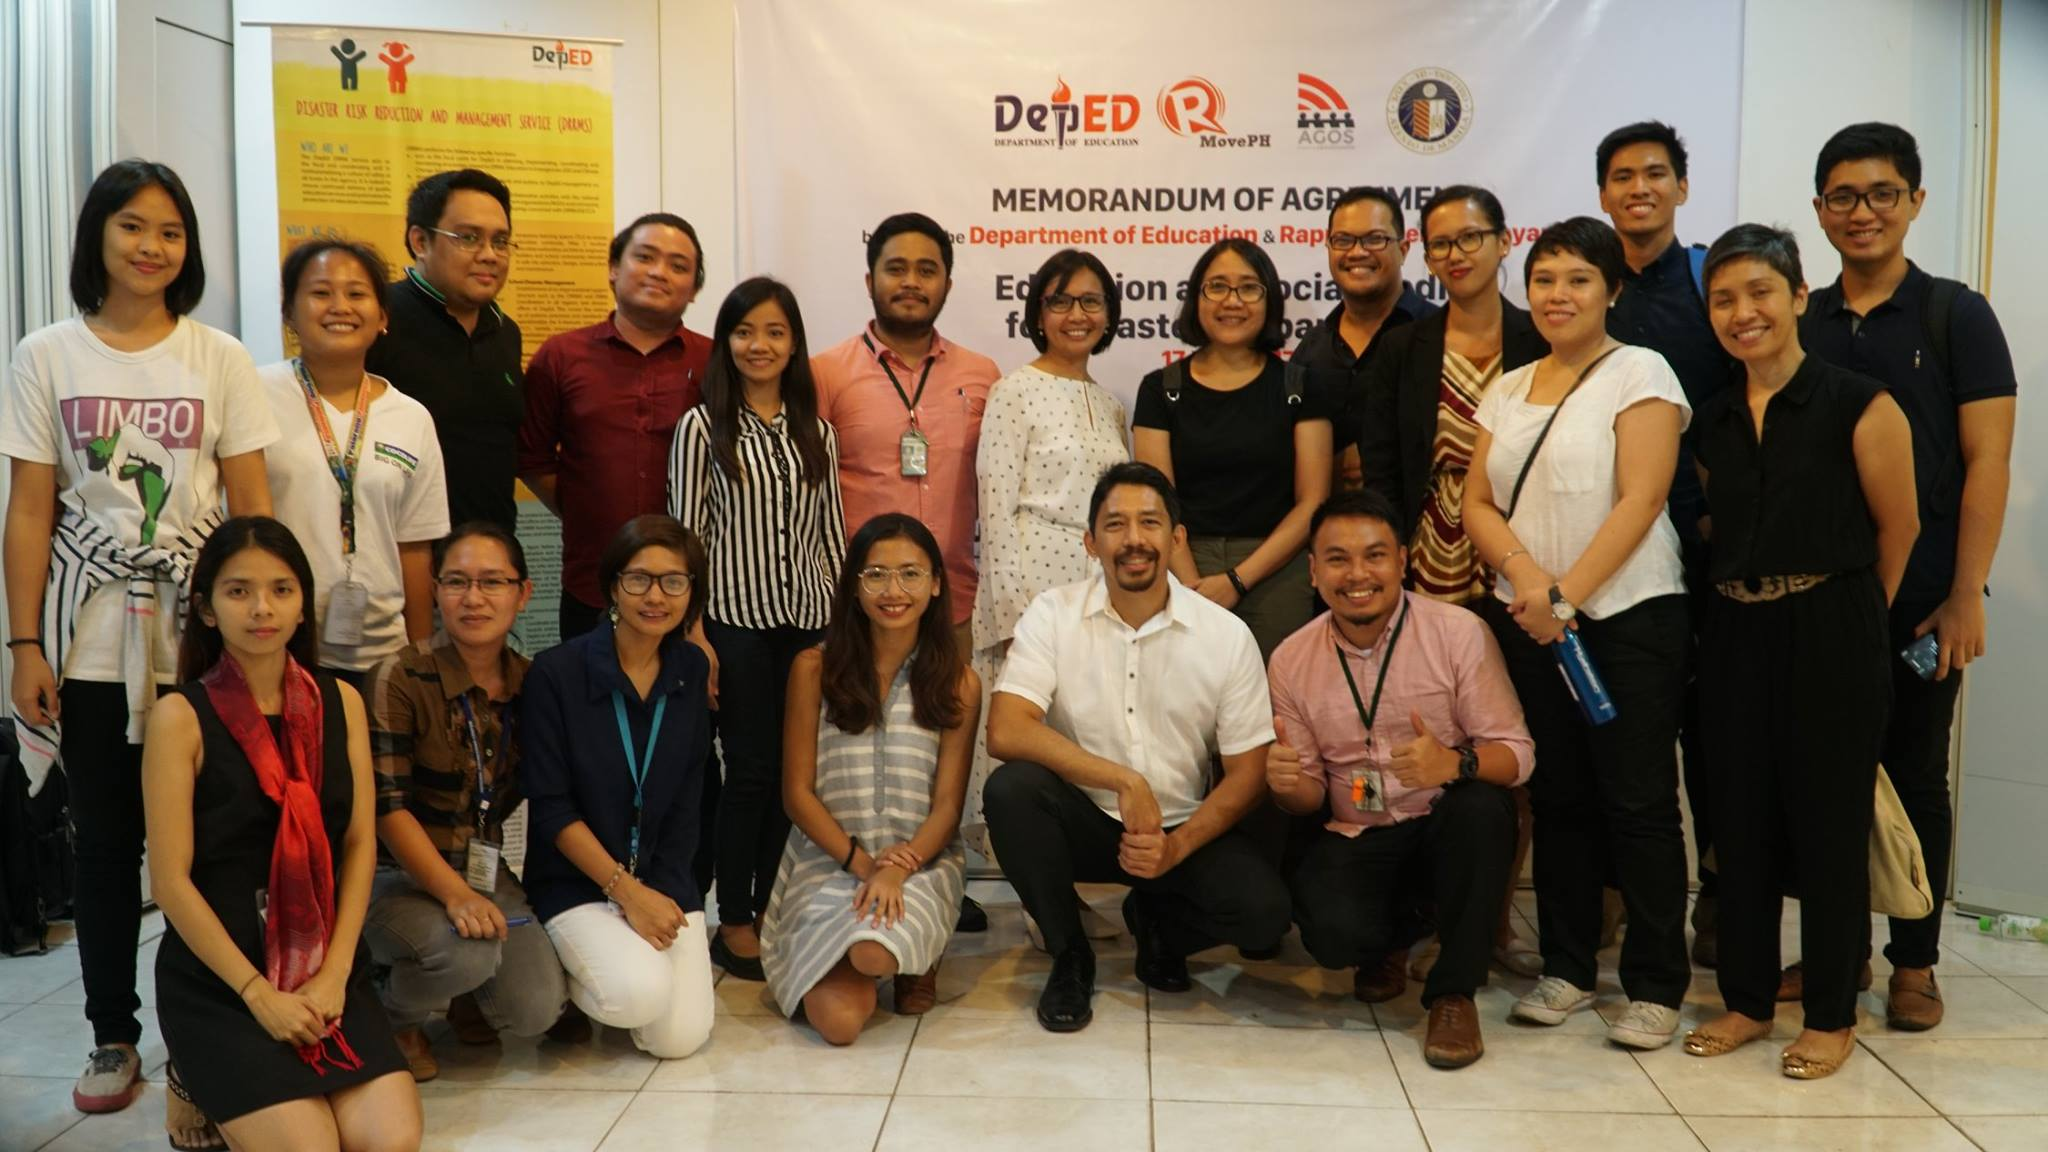 SIGNED. Members of DepEd, MovePH and Ateneo eBayanihan teams. At the center are Dir Ronilda Co, Prof Reena Estuar of Ateneo, and Rupert Ambil of MovePH. Photo by Jaen Manegdeg/Rappler